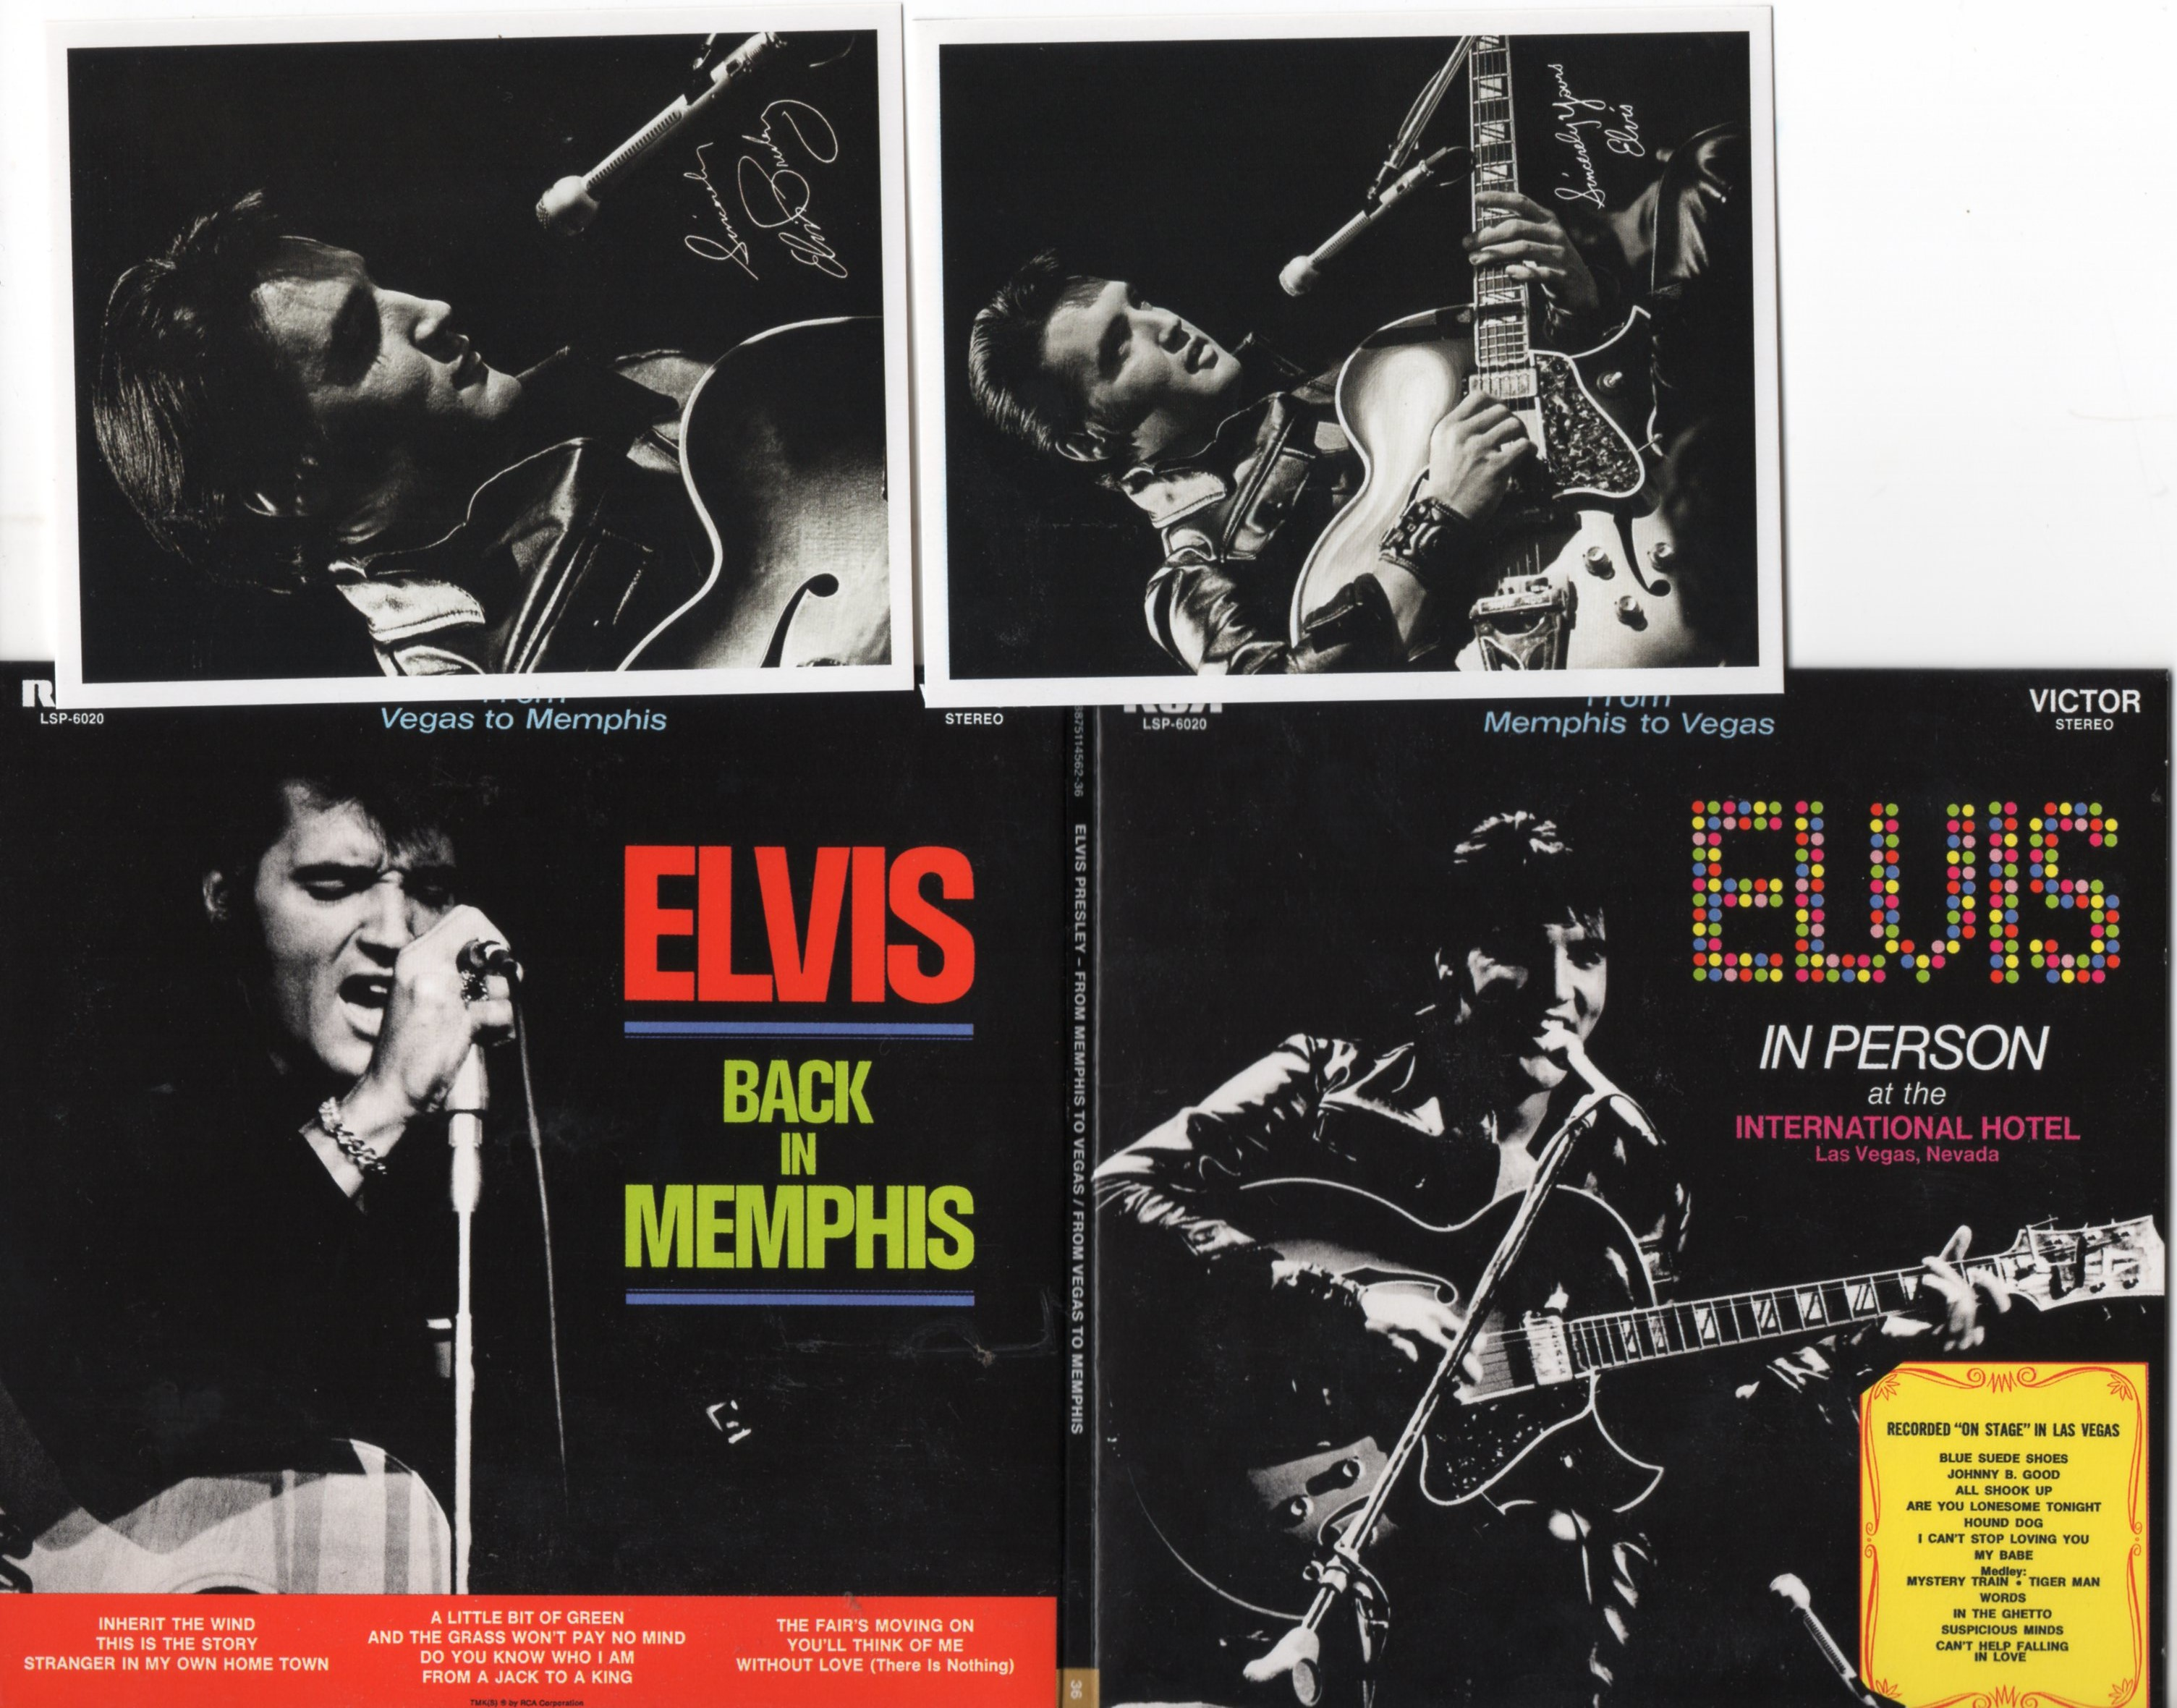 Elvis PRESLEY - From Memphis To Vegas / From Vegas To Memphis (1969 - Mini Lp Replica Gatefold - 22-track Card Sleev